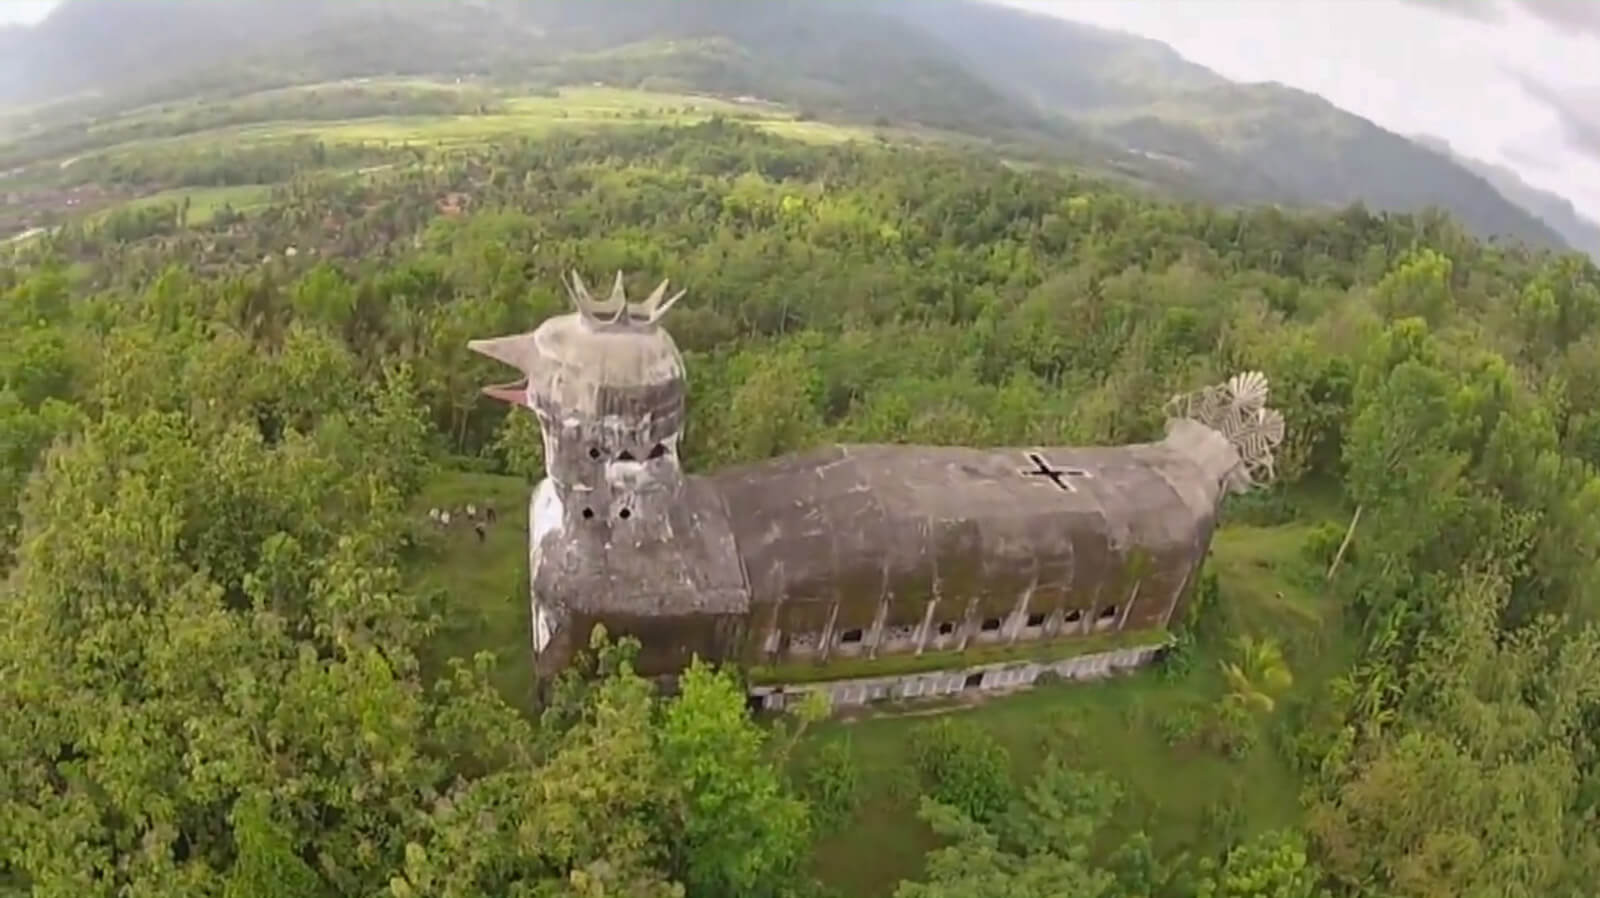 Aerial view of the Chicken Church of Magelang, one of the unique and offbeat destinations in Indonesia